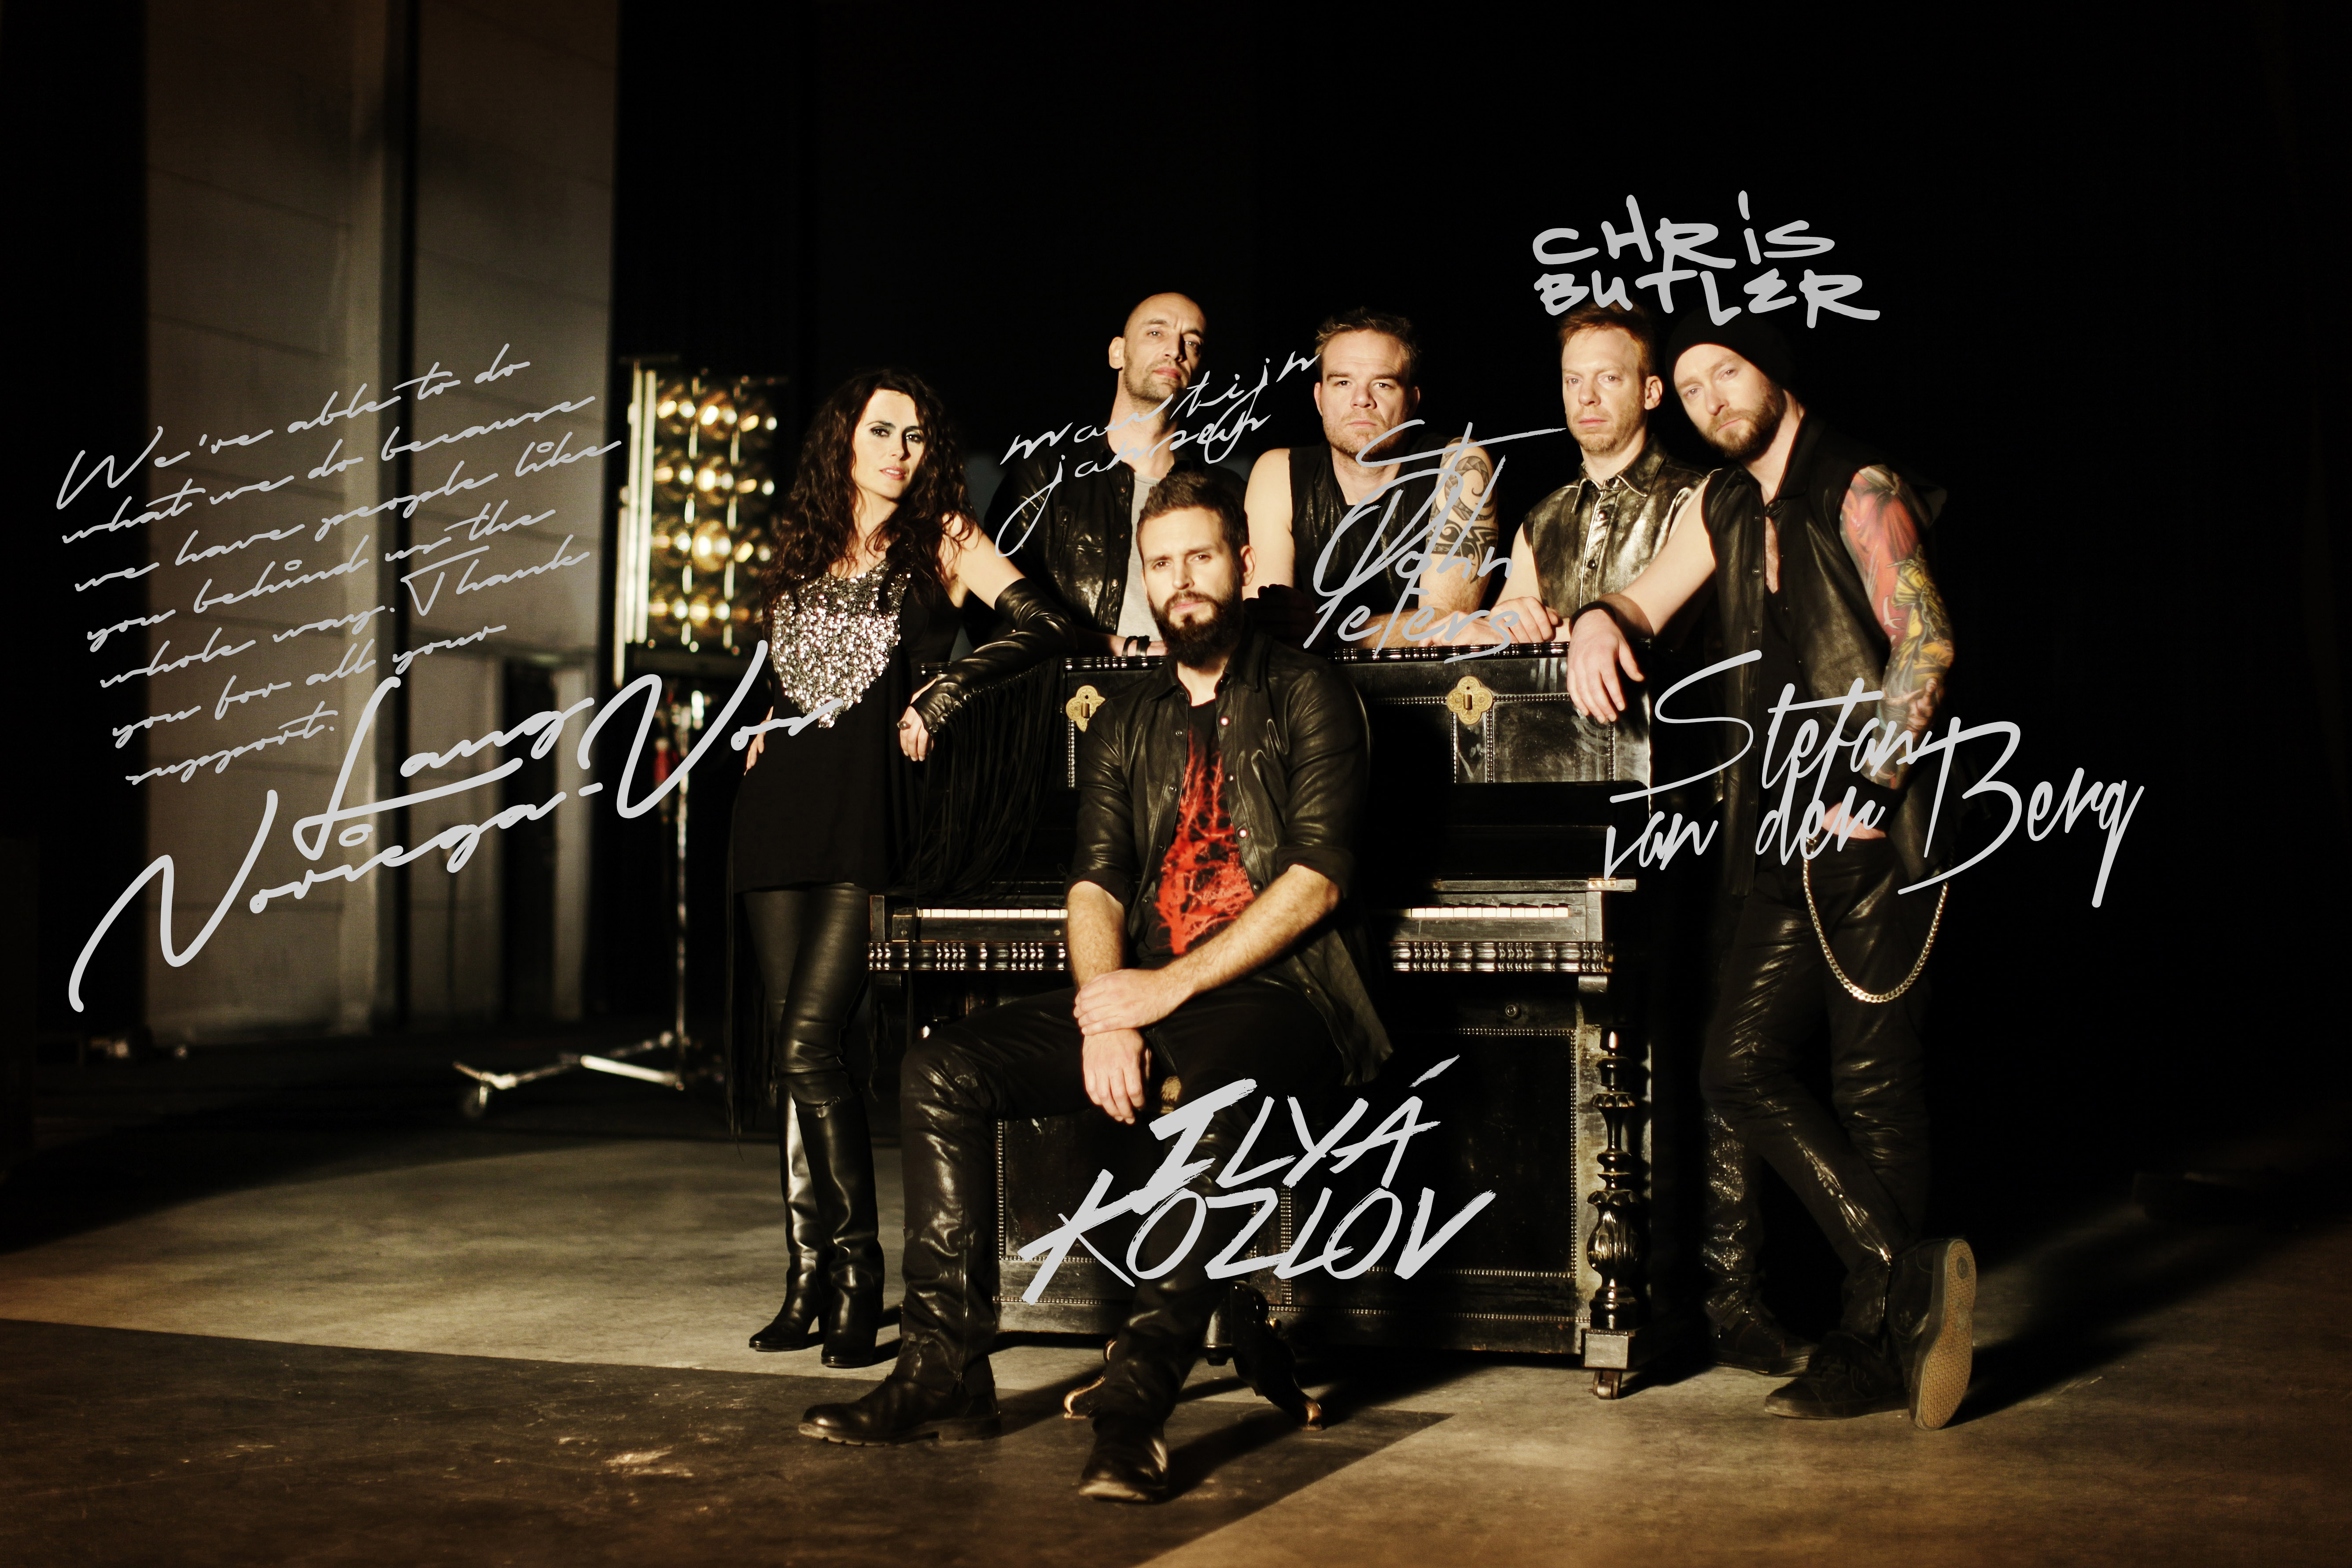 tunguska effect band autographs.jpg